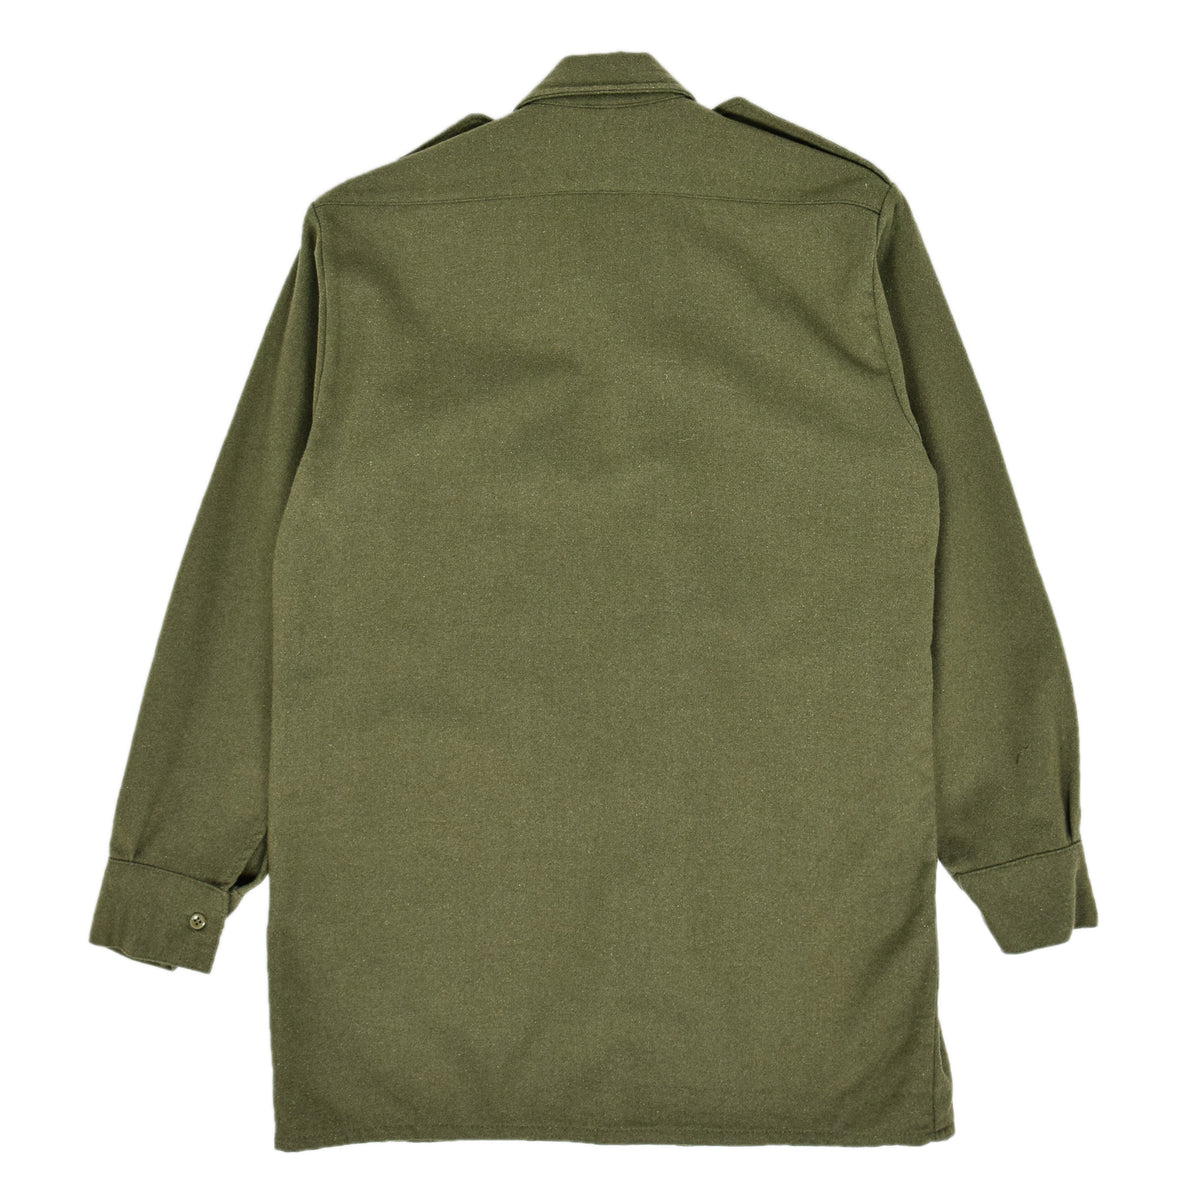 Vintage 80s British Army Mans Combat Wool Shirt Olive Green S BACK